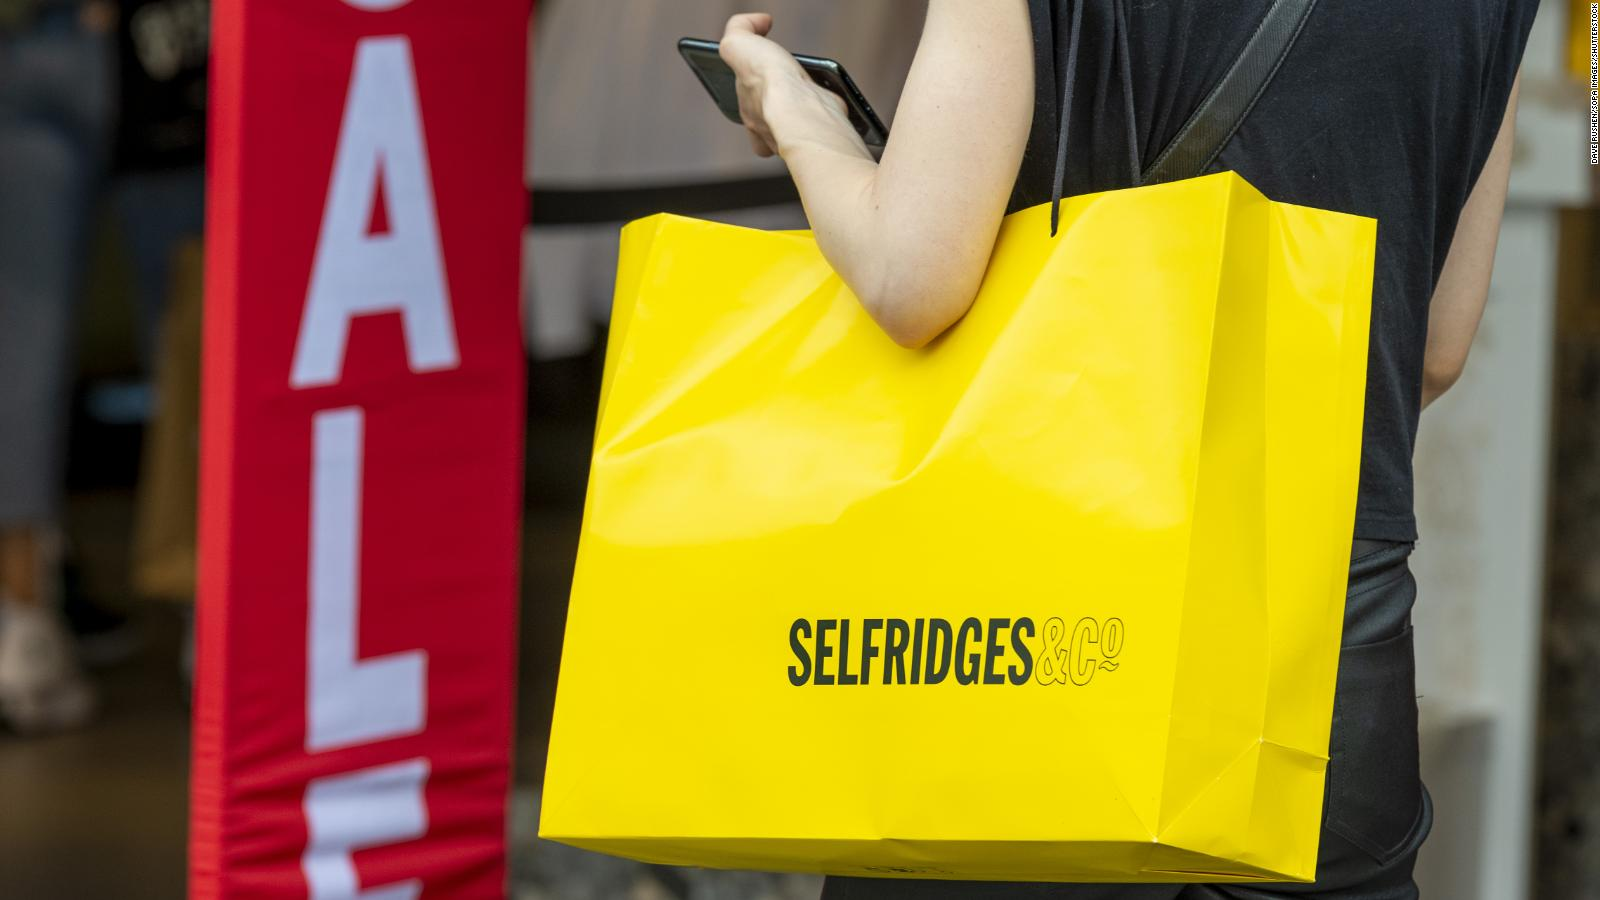 A woman is seen holding a Selfridges shopping bag in London, on June 15.